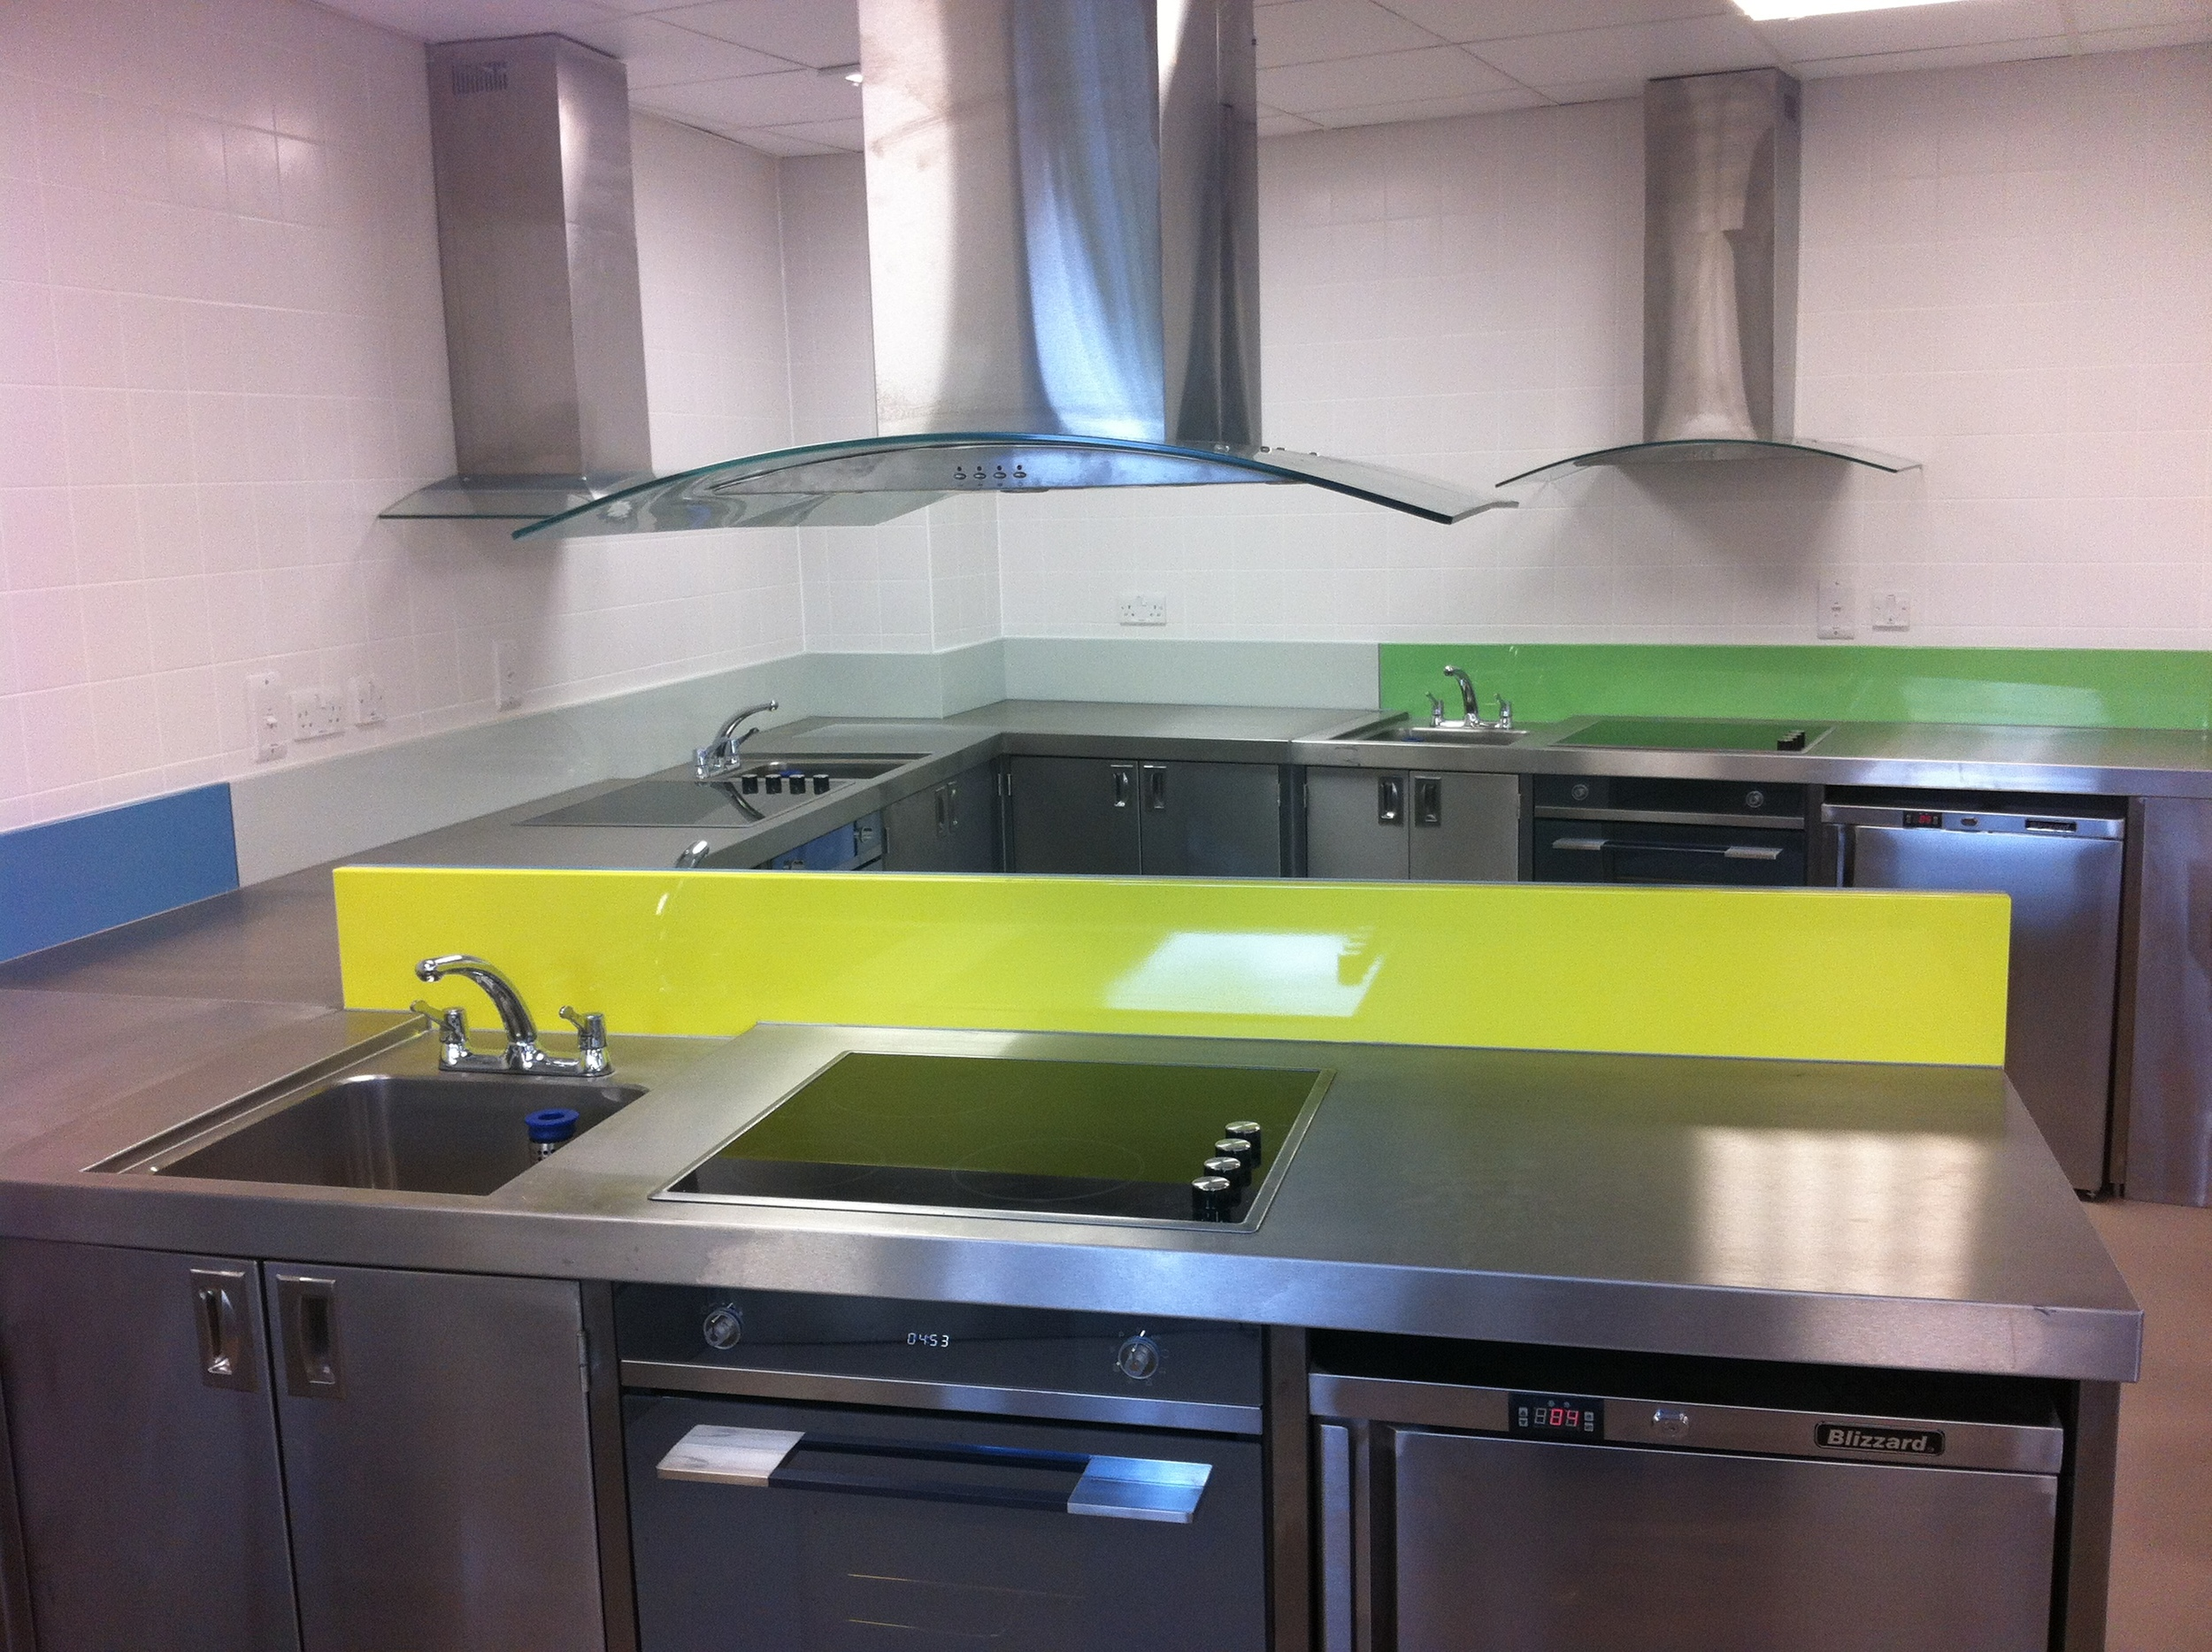 Richmond School's Kitchen